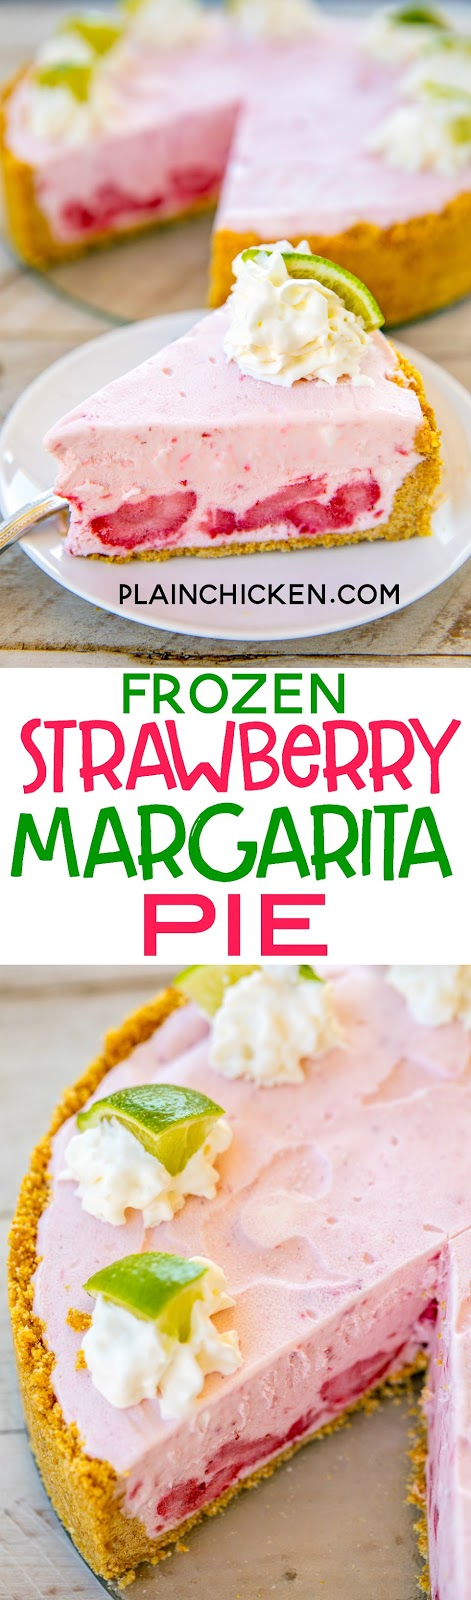 Frozen Strawberry Margarita Pie - seriously delicious!!! No-bake! Graham cracker crumbs, sugar, butter, sweetened condensed milk, margarita mix, frozen strawberries and whipped cream. Ready to freeze in about 5 minutes. SO easy and SOO good! Great way to beat the heat this summer! #dessert #nobake #frozendessert #margarita